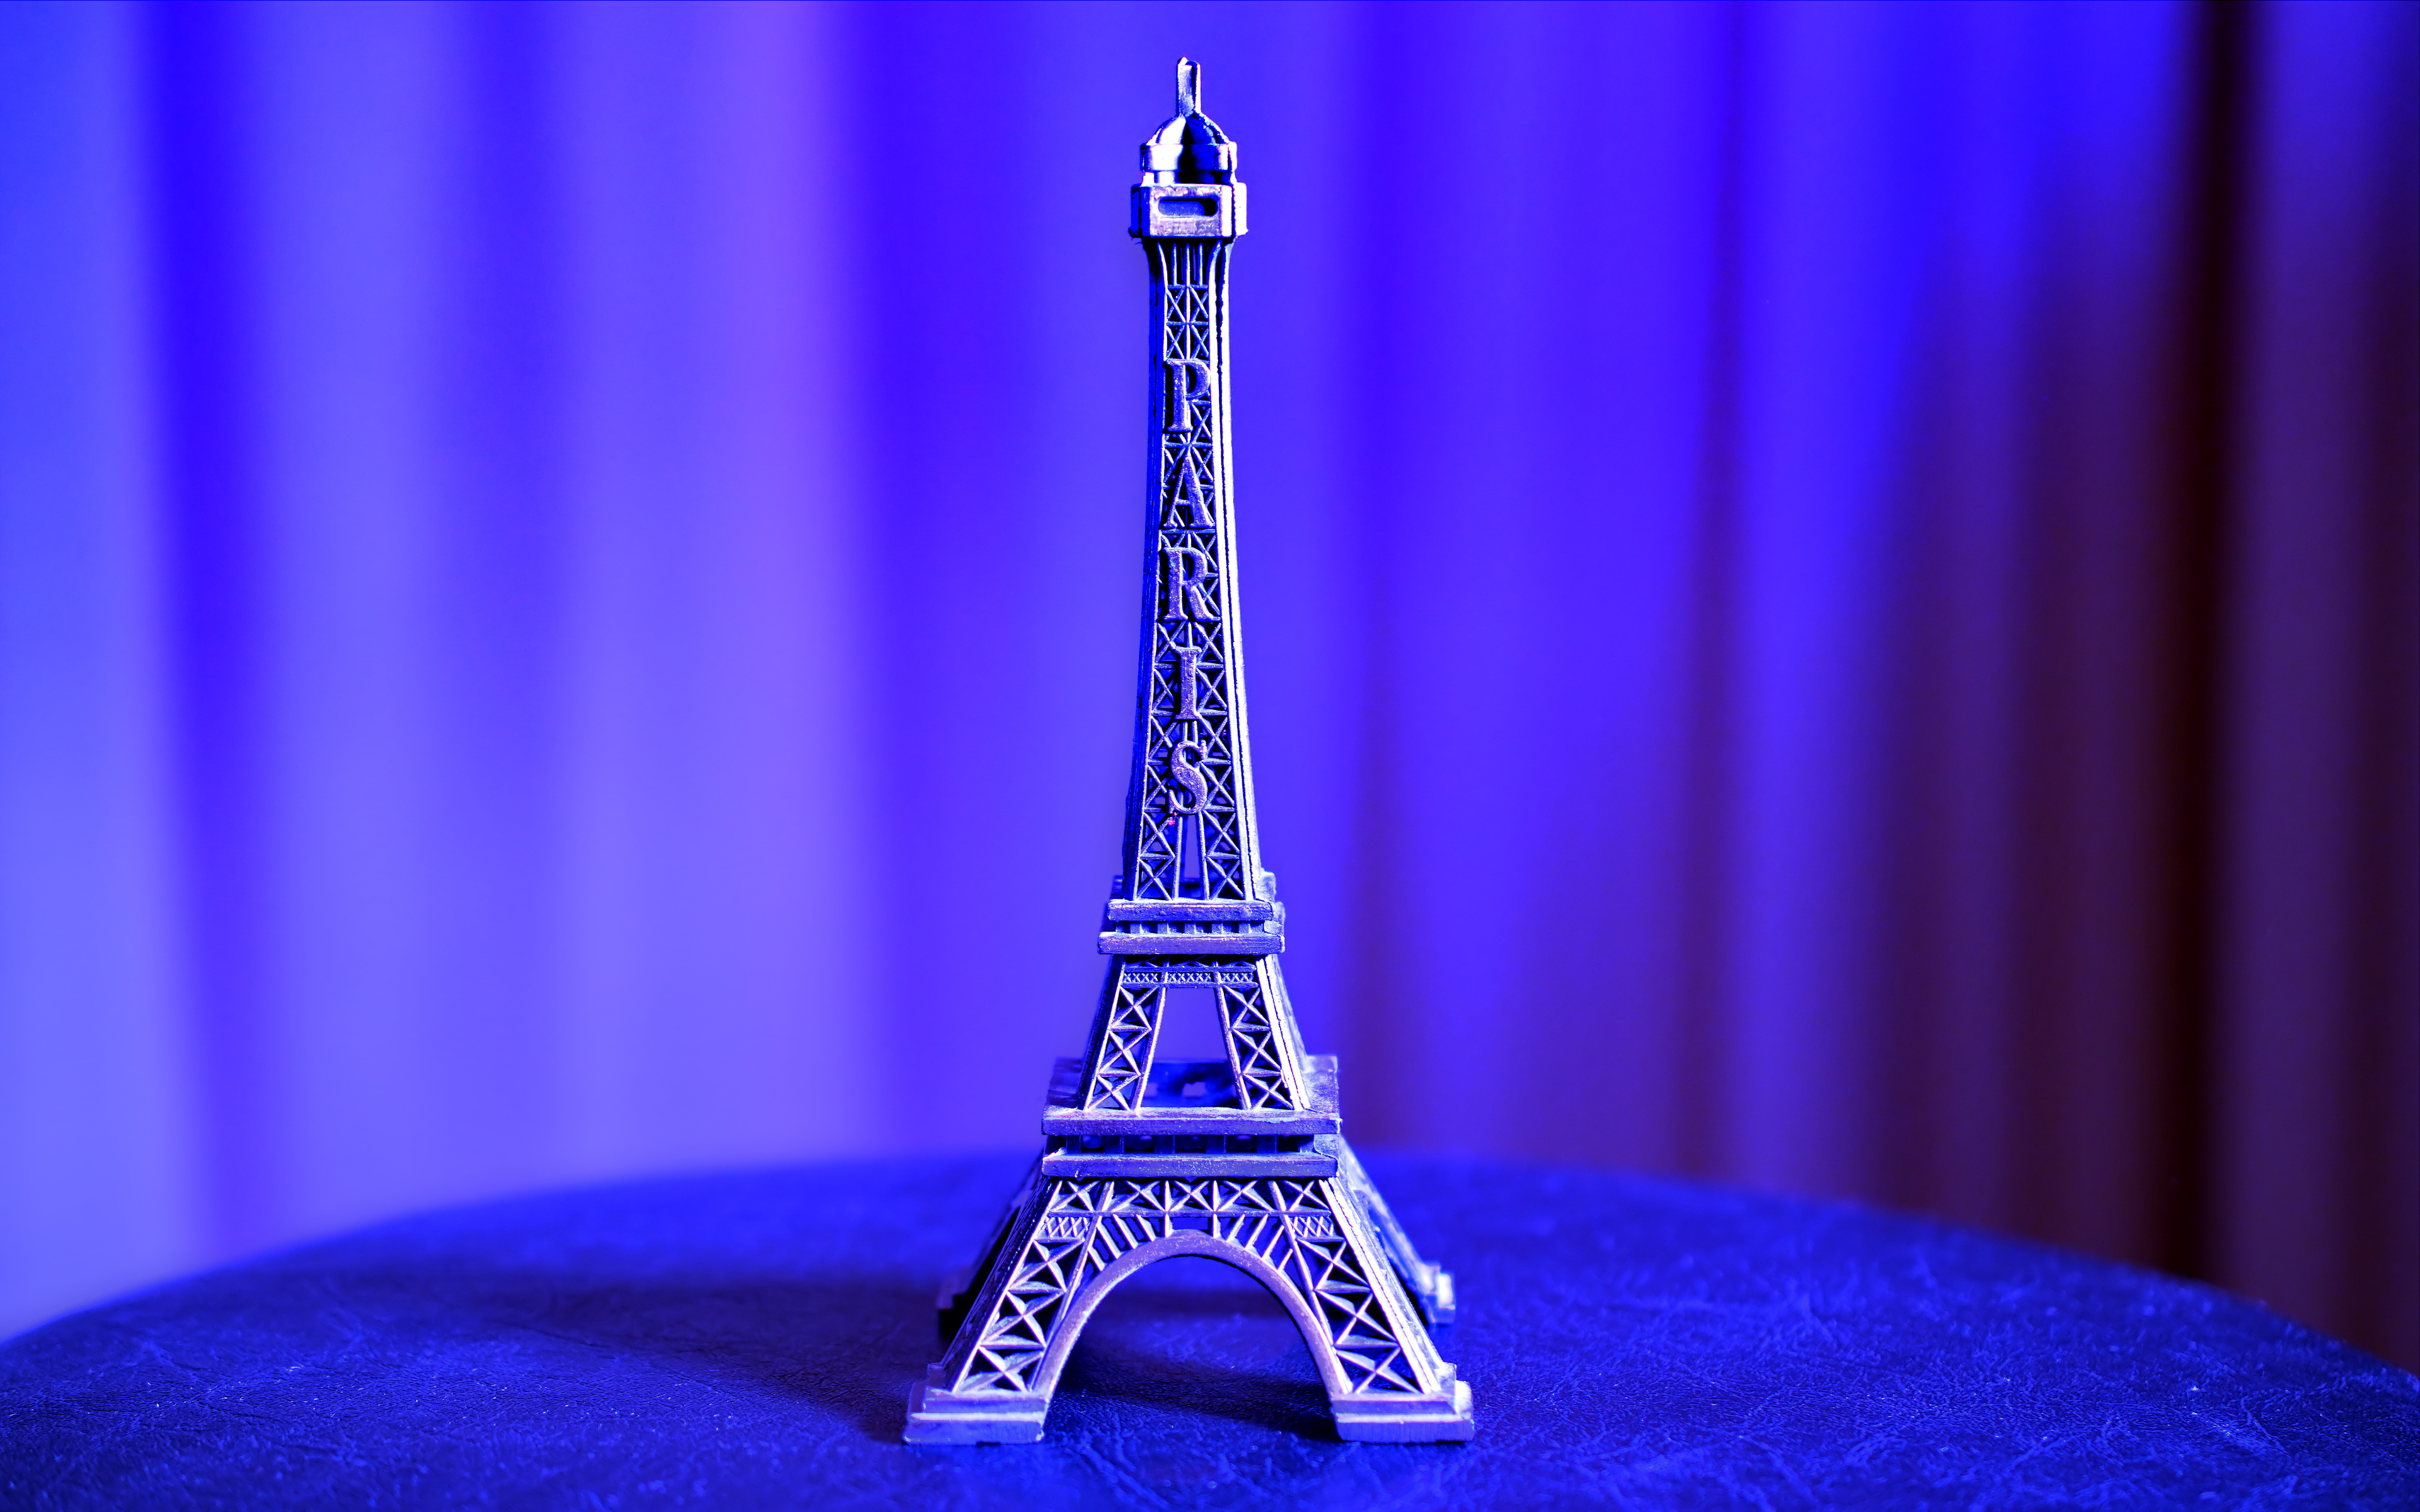 Eiffel Tower Miniature on Blue Textile